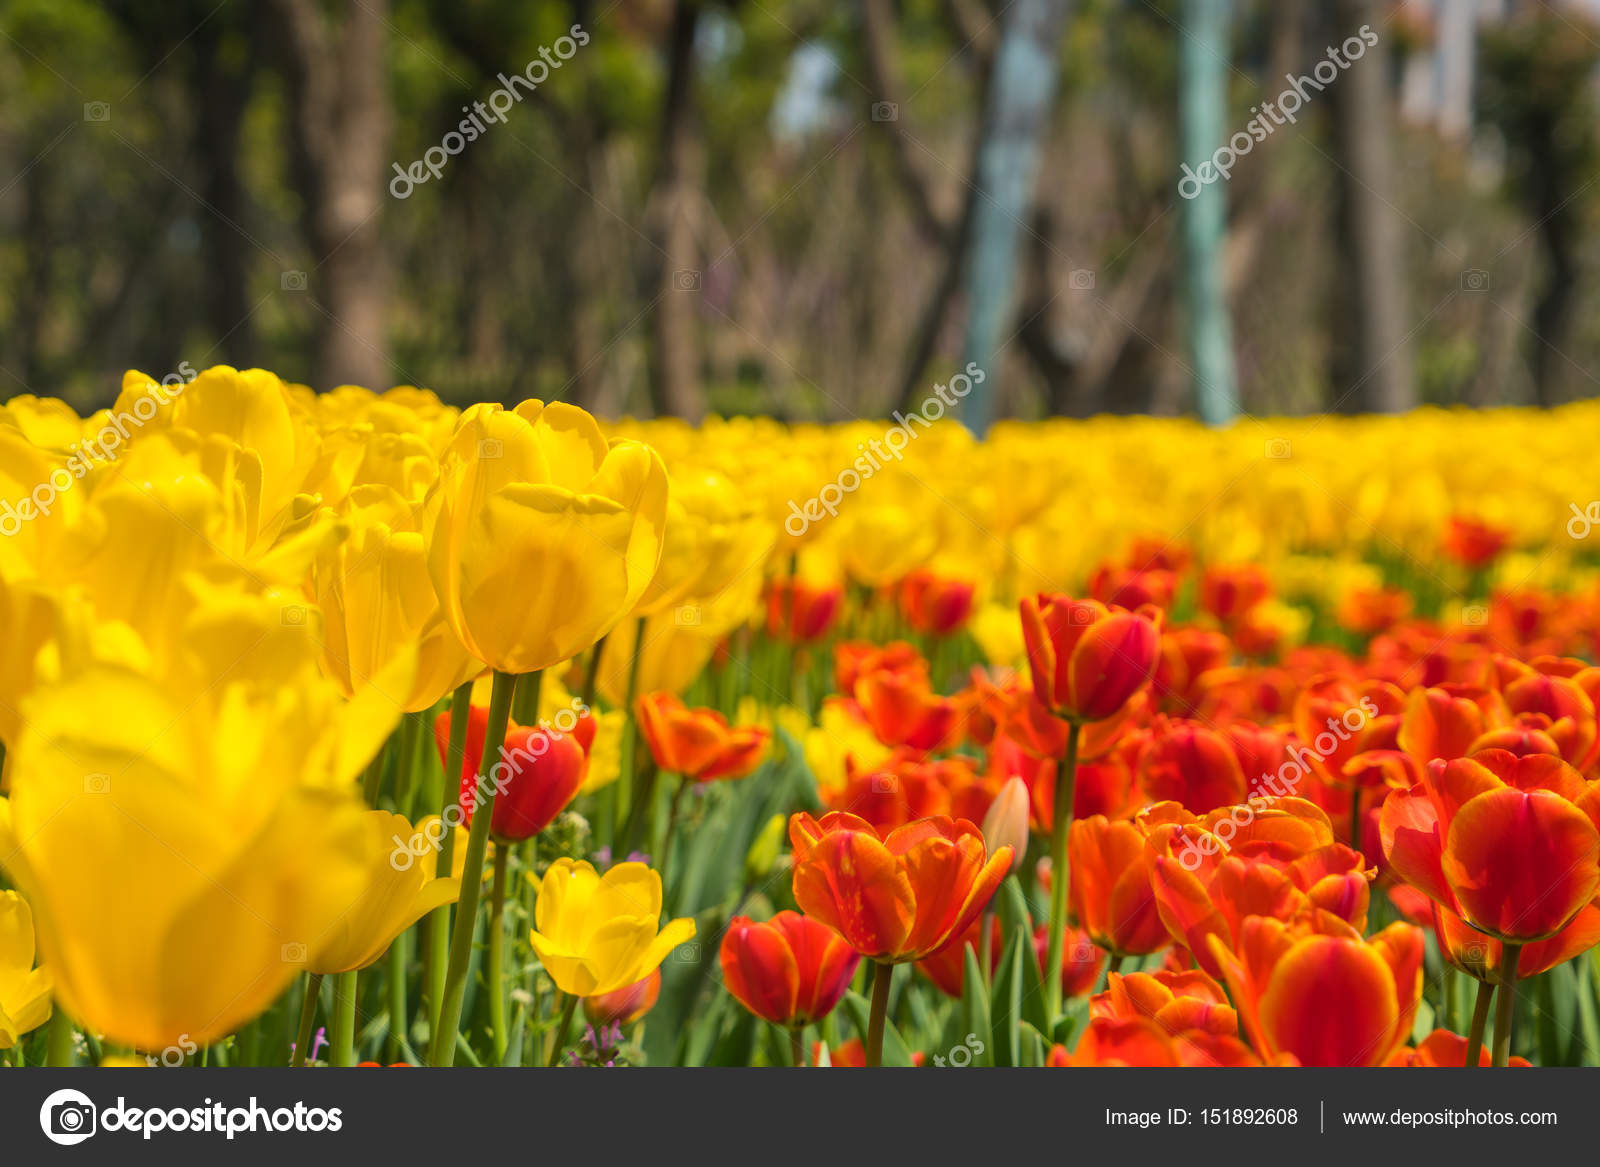 The High Contrast Of Yellow And Orange Tulips Garden Stock Photo